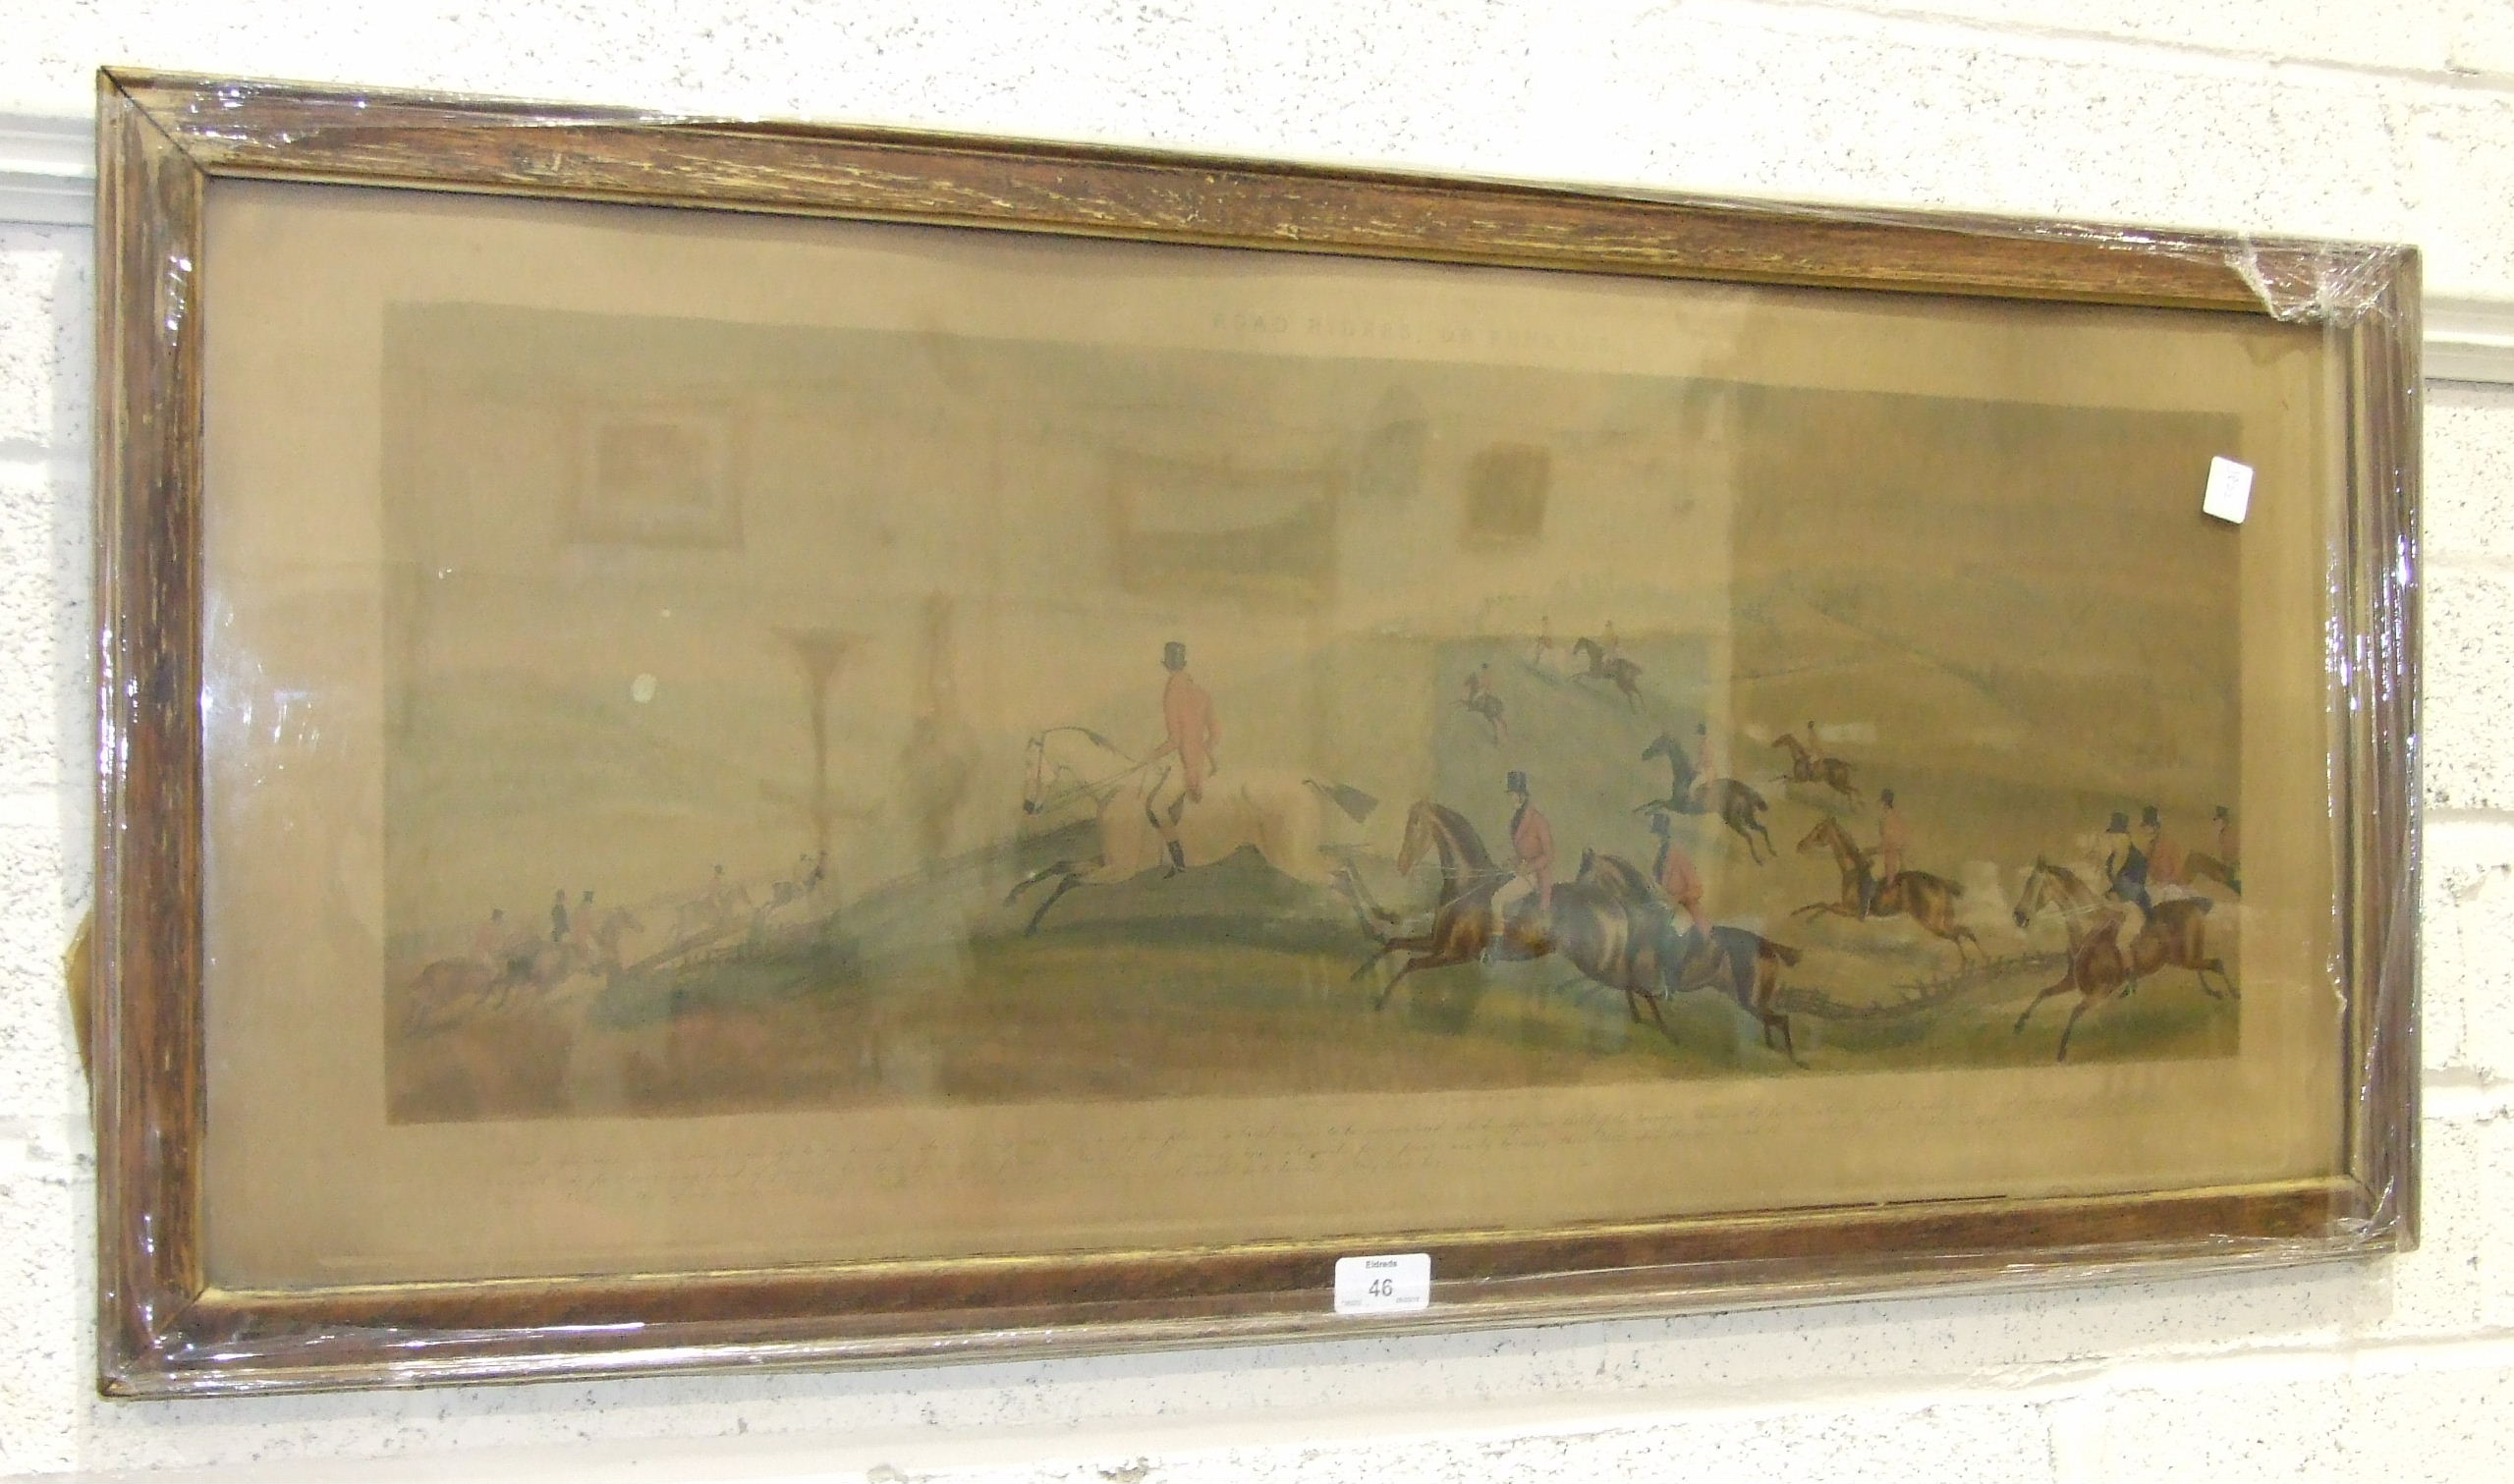 Lot 46 - Hunt after Davis, coloured hunting print, The Few, Not Funkers and a companion, Road Riders or